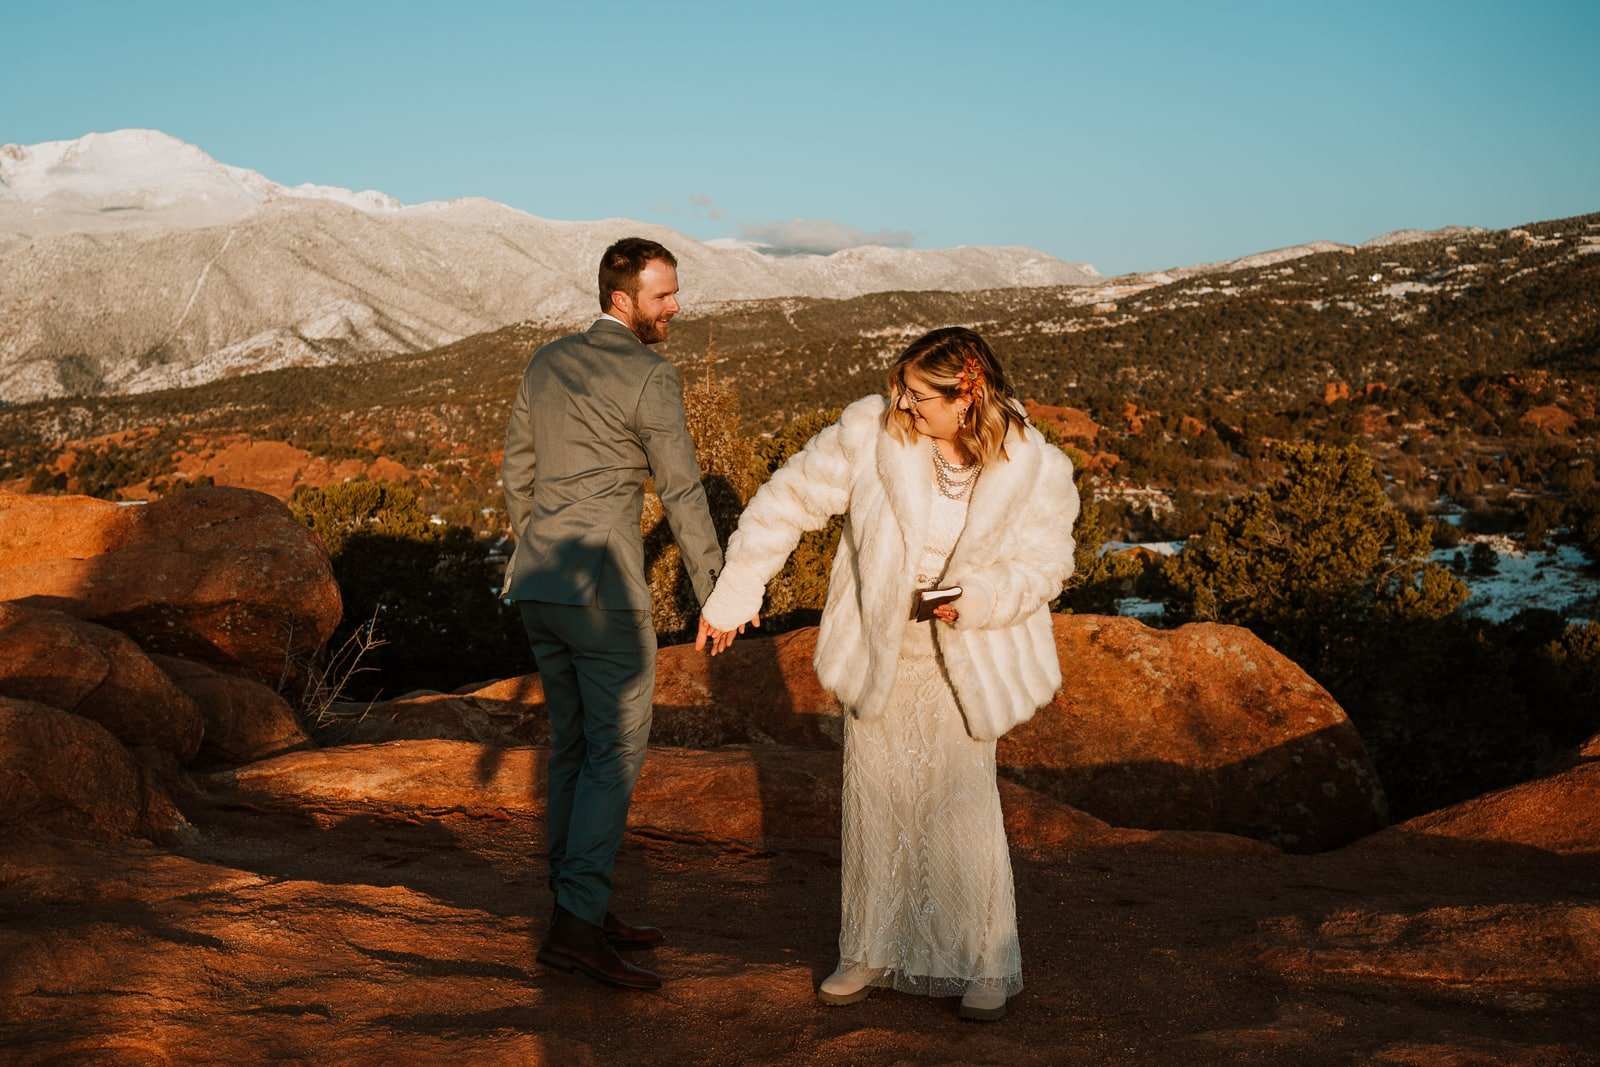 Bride and groom high five each other after getting married at sunrise at Garden of the Gods